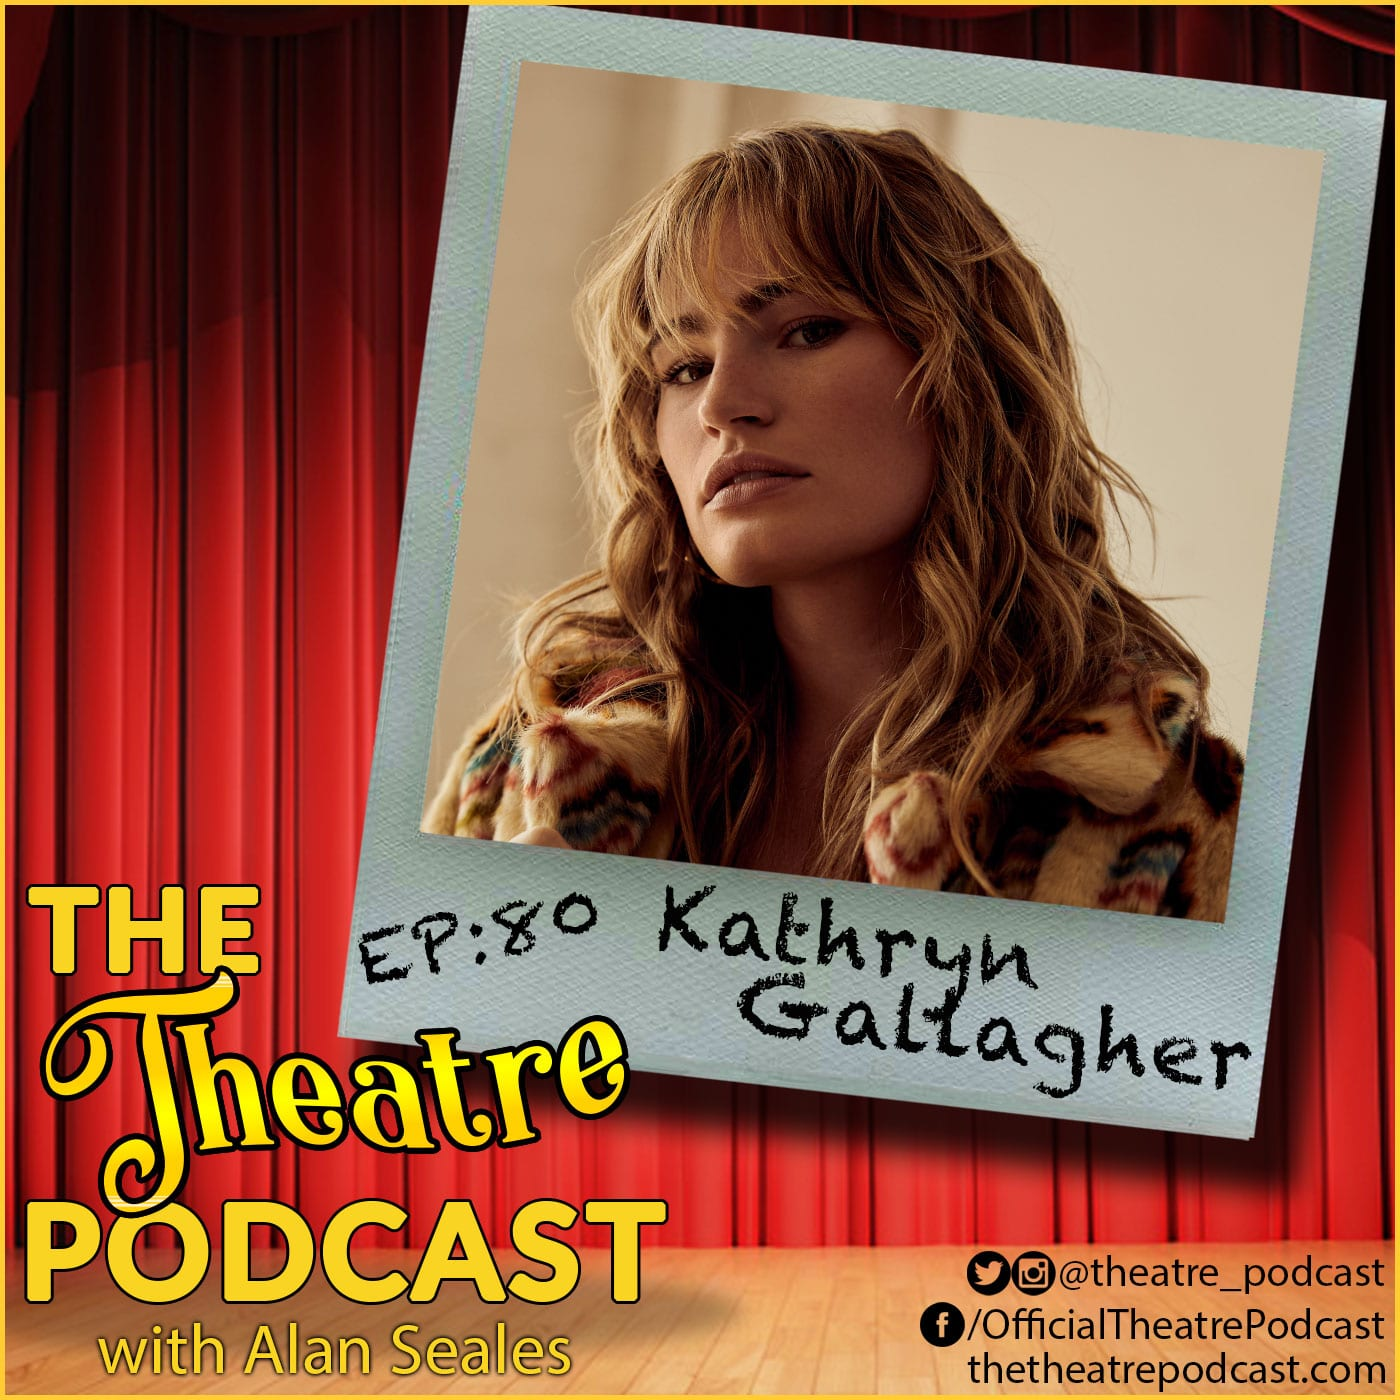 Kathryn Gallagher Ep80 - Kathryn Gallagher, Jagged Little Pill & Spring Awakening revival